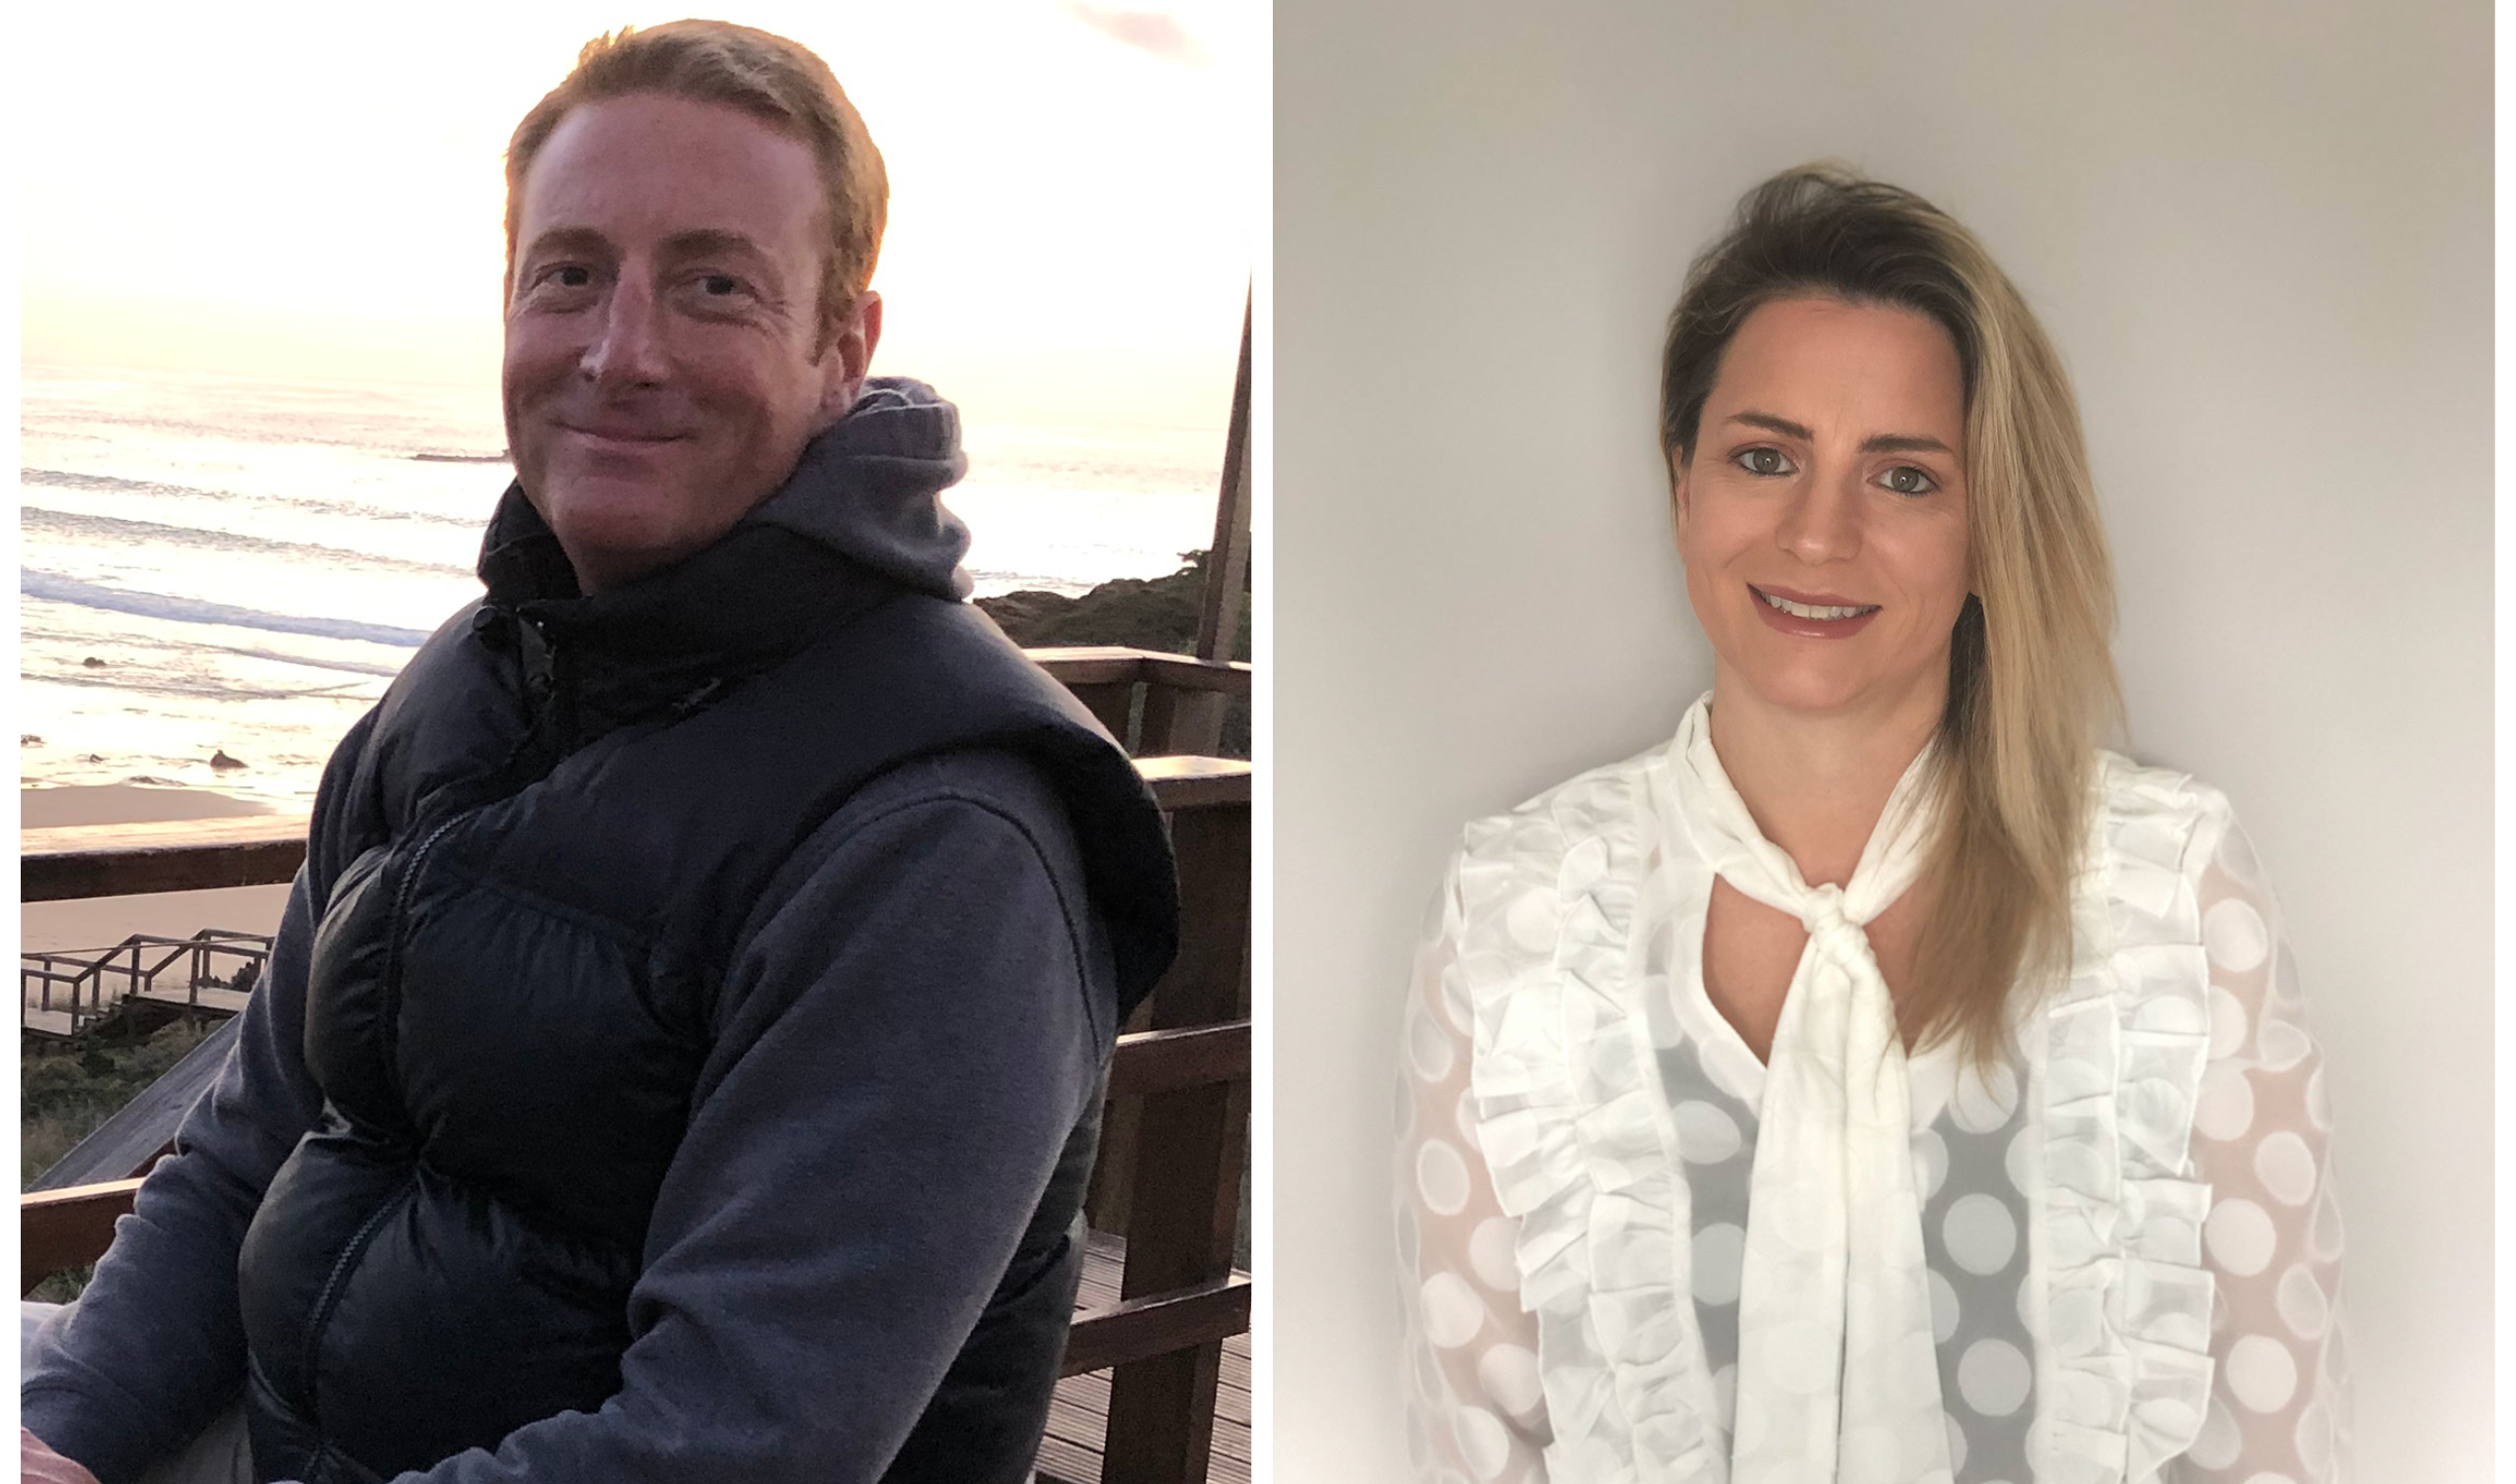 Toolstream has appointed James Whitaker and Laura Cansfield as Marketing Director and Head of Workwear respectively.